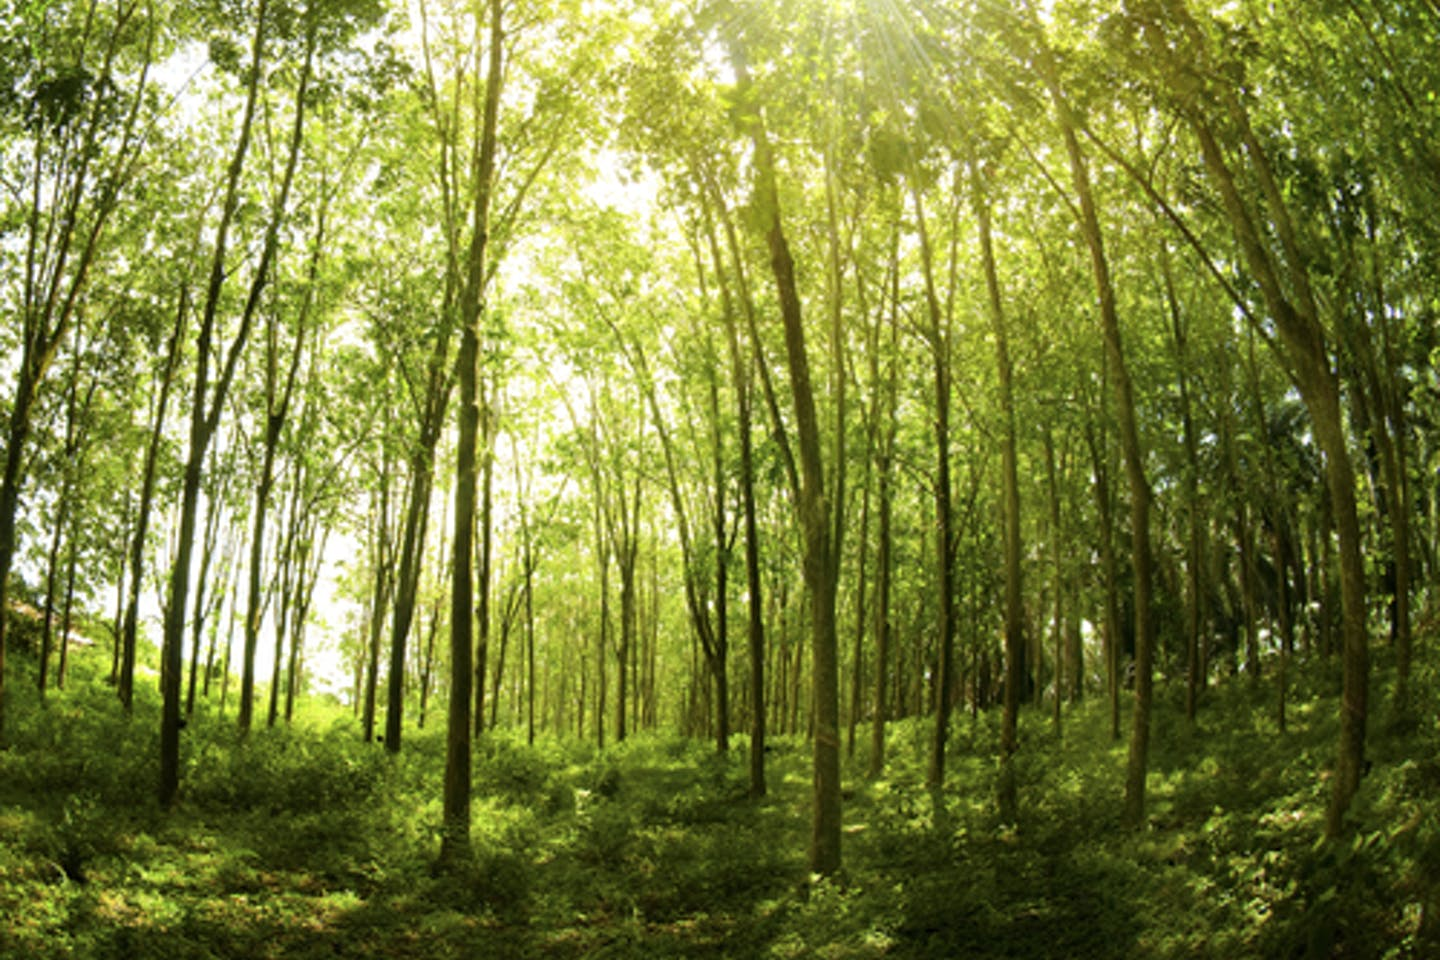 Malaysian forest of rubber trees